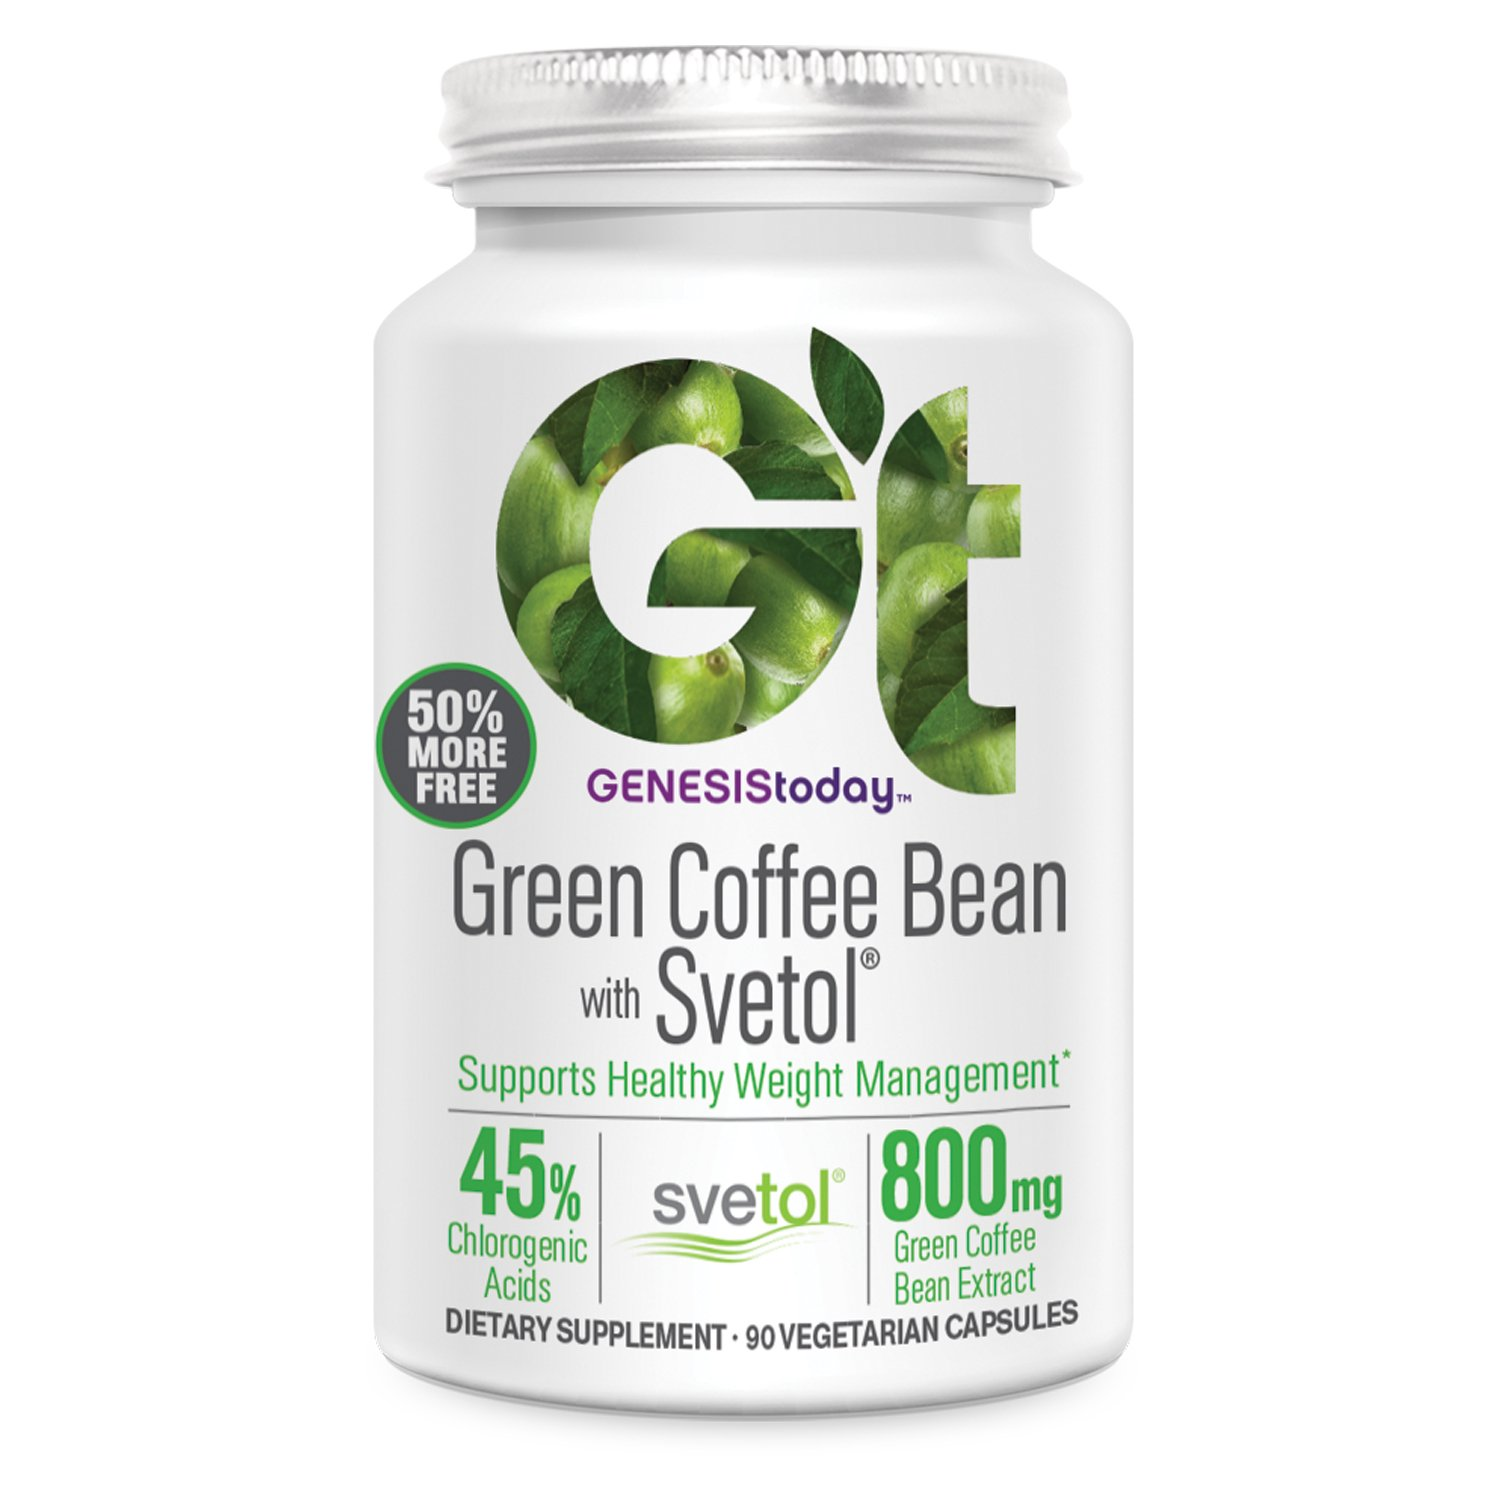 Genesis Today, Green Coffee Bean with Svetol 800mg, 90 Count